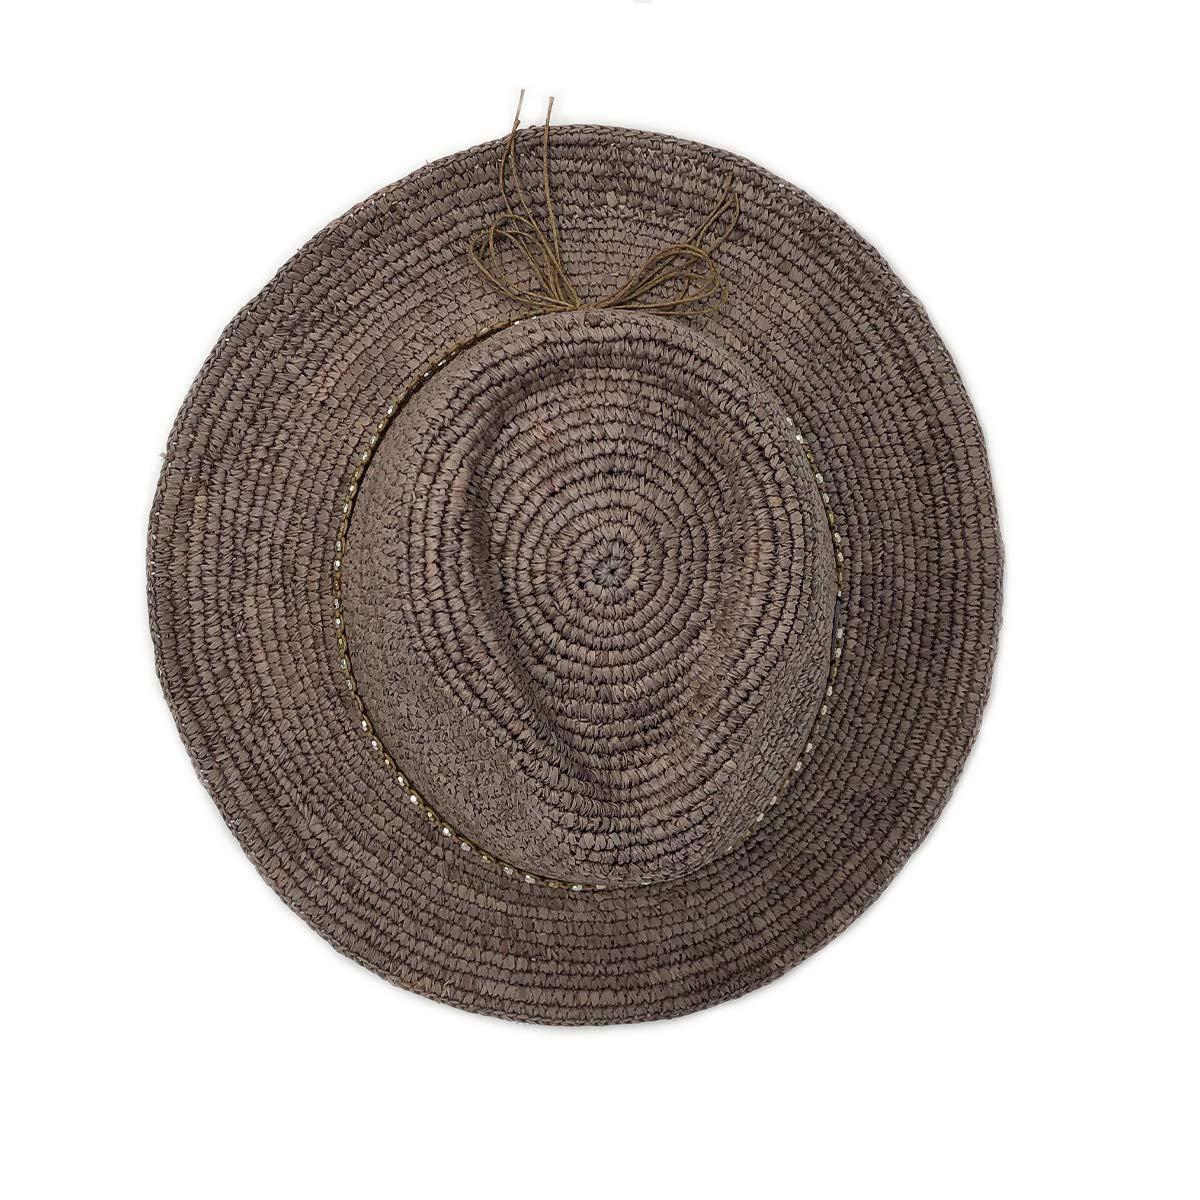 Wallaroo Hat Company Women's W Collection Malibu Fedora - Mushroom - Raffia by Wallaroo Hat Company (Image #3)